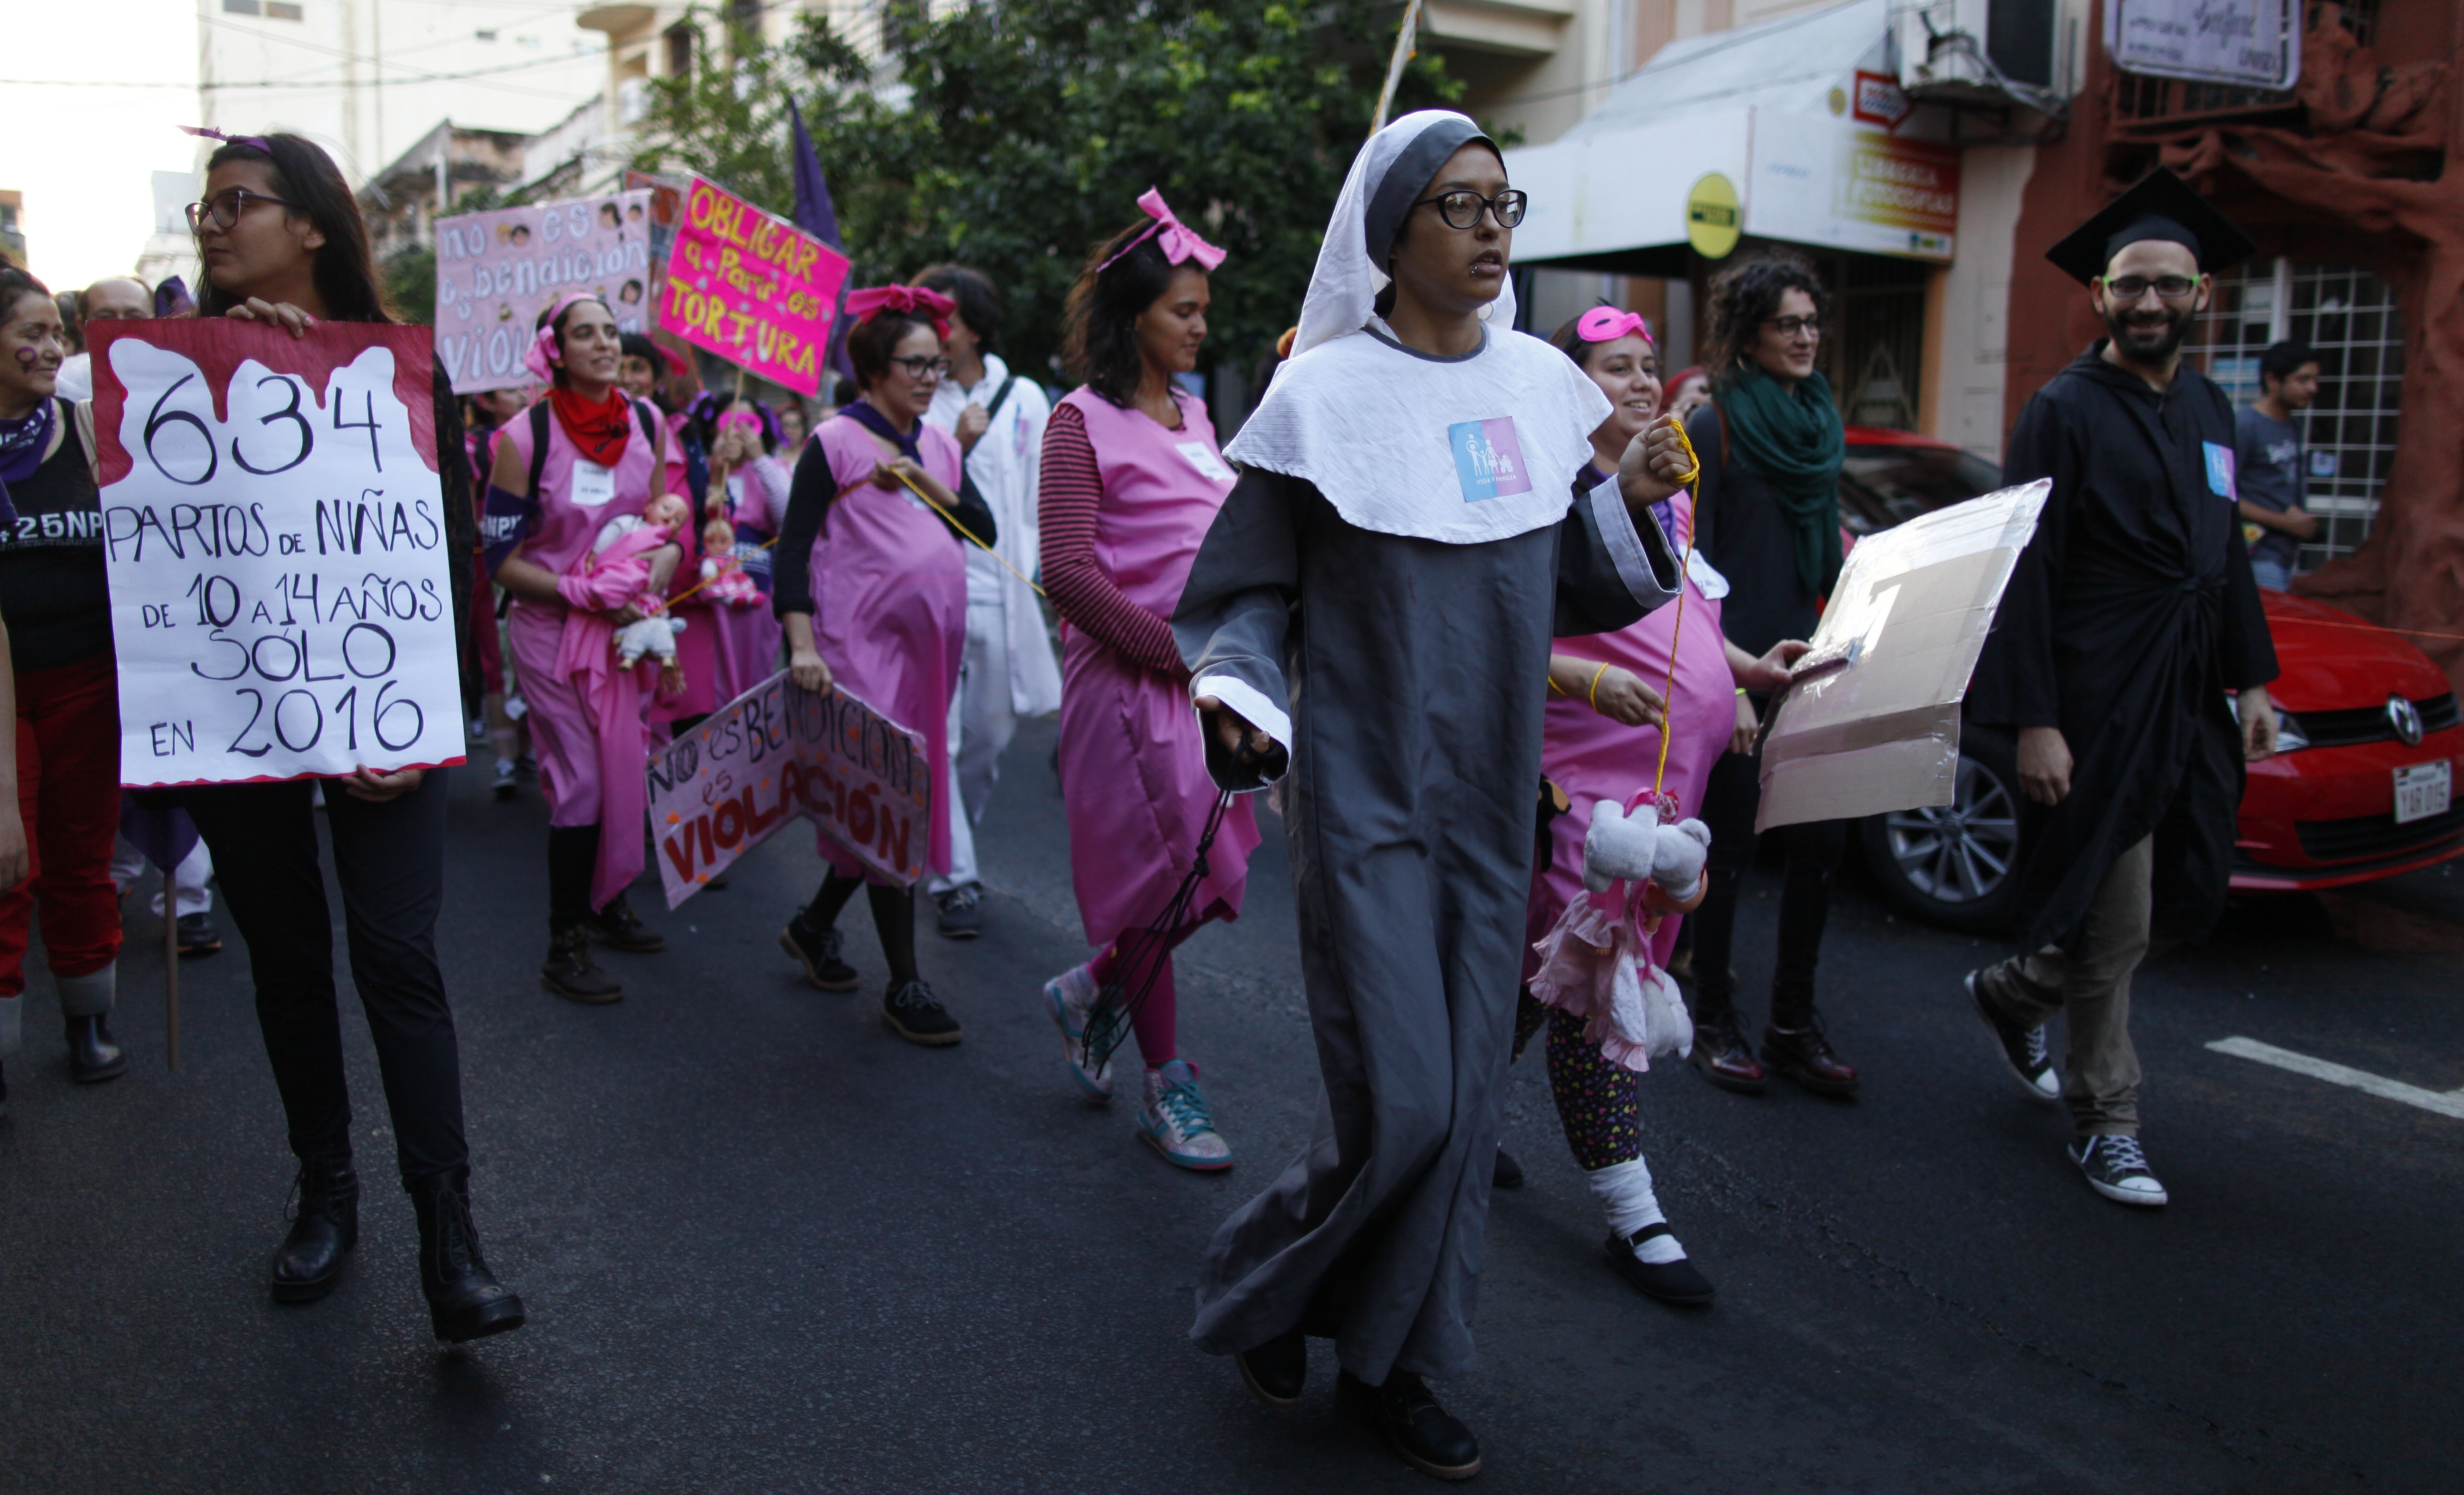 A young woman dressed as a nun leads a group of women depicting pregnant schoolgirls in a march marking the International Day for the Elimination of Violence against Women, in Asuncion, Paraguay, Nov. 25, 2017. According to officials there is at leas...